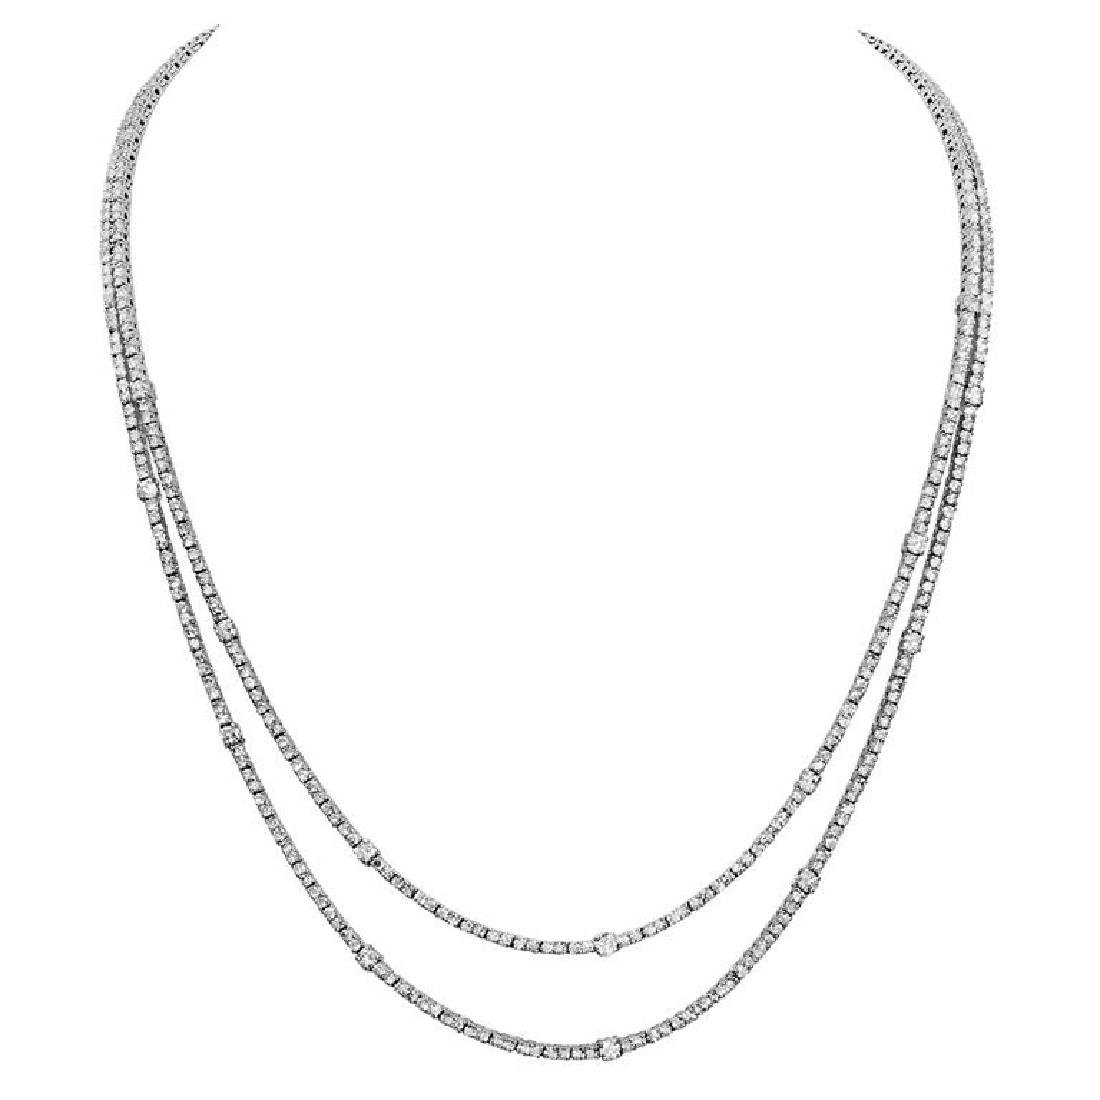 14k White Gold 10.97ct Diamond Necklace